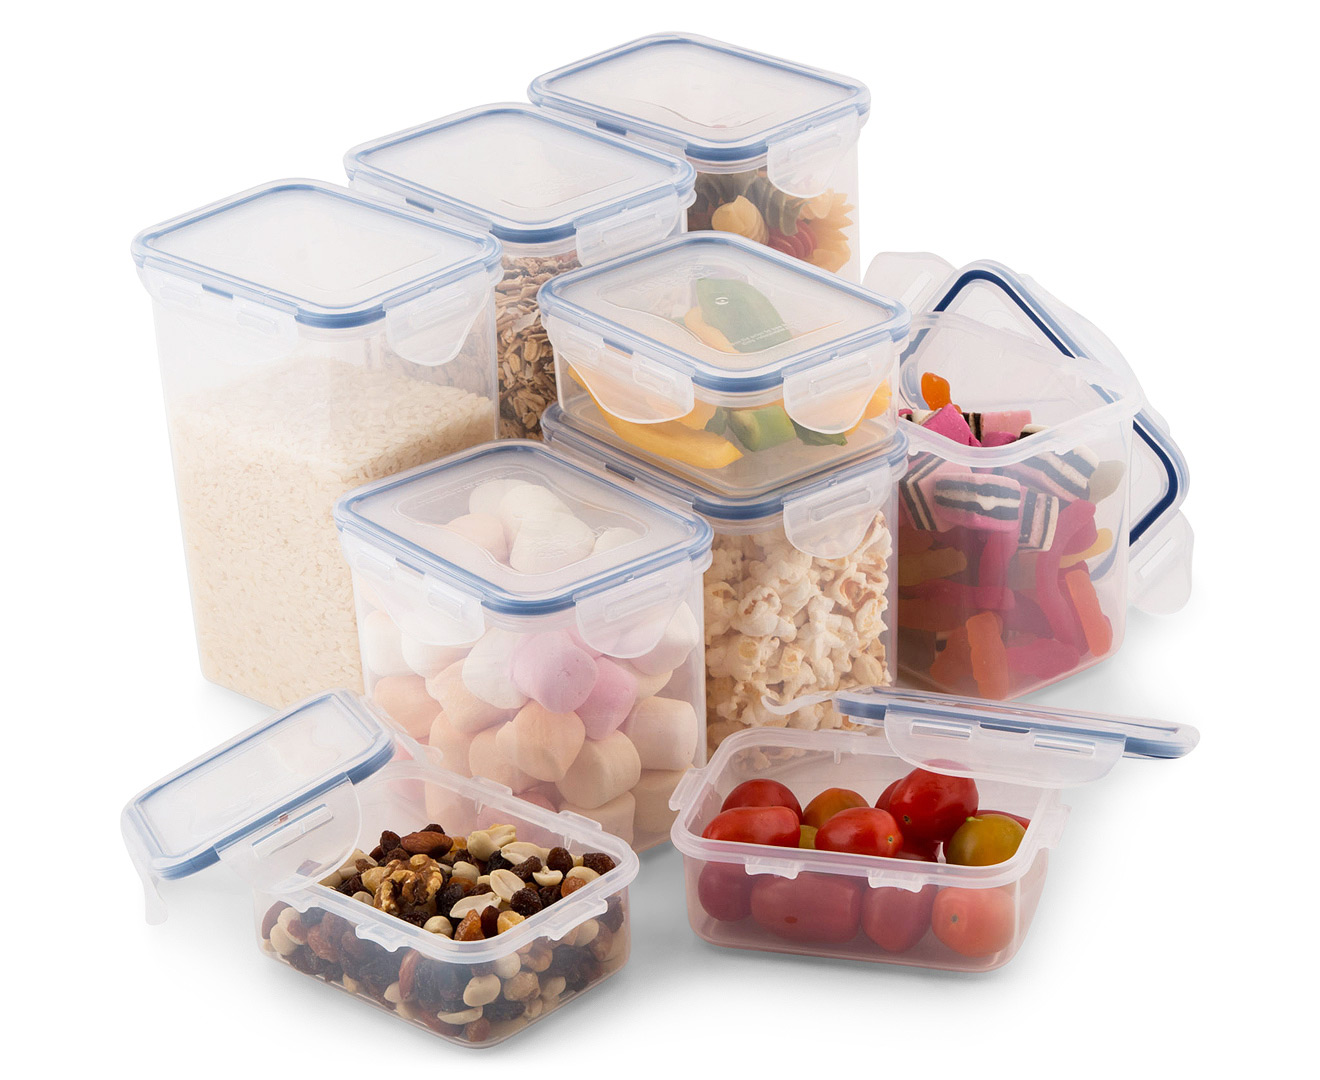 Pantry Storage Containers Australia Listitdallas